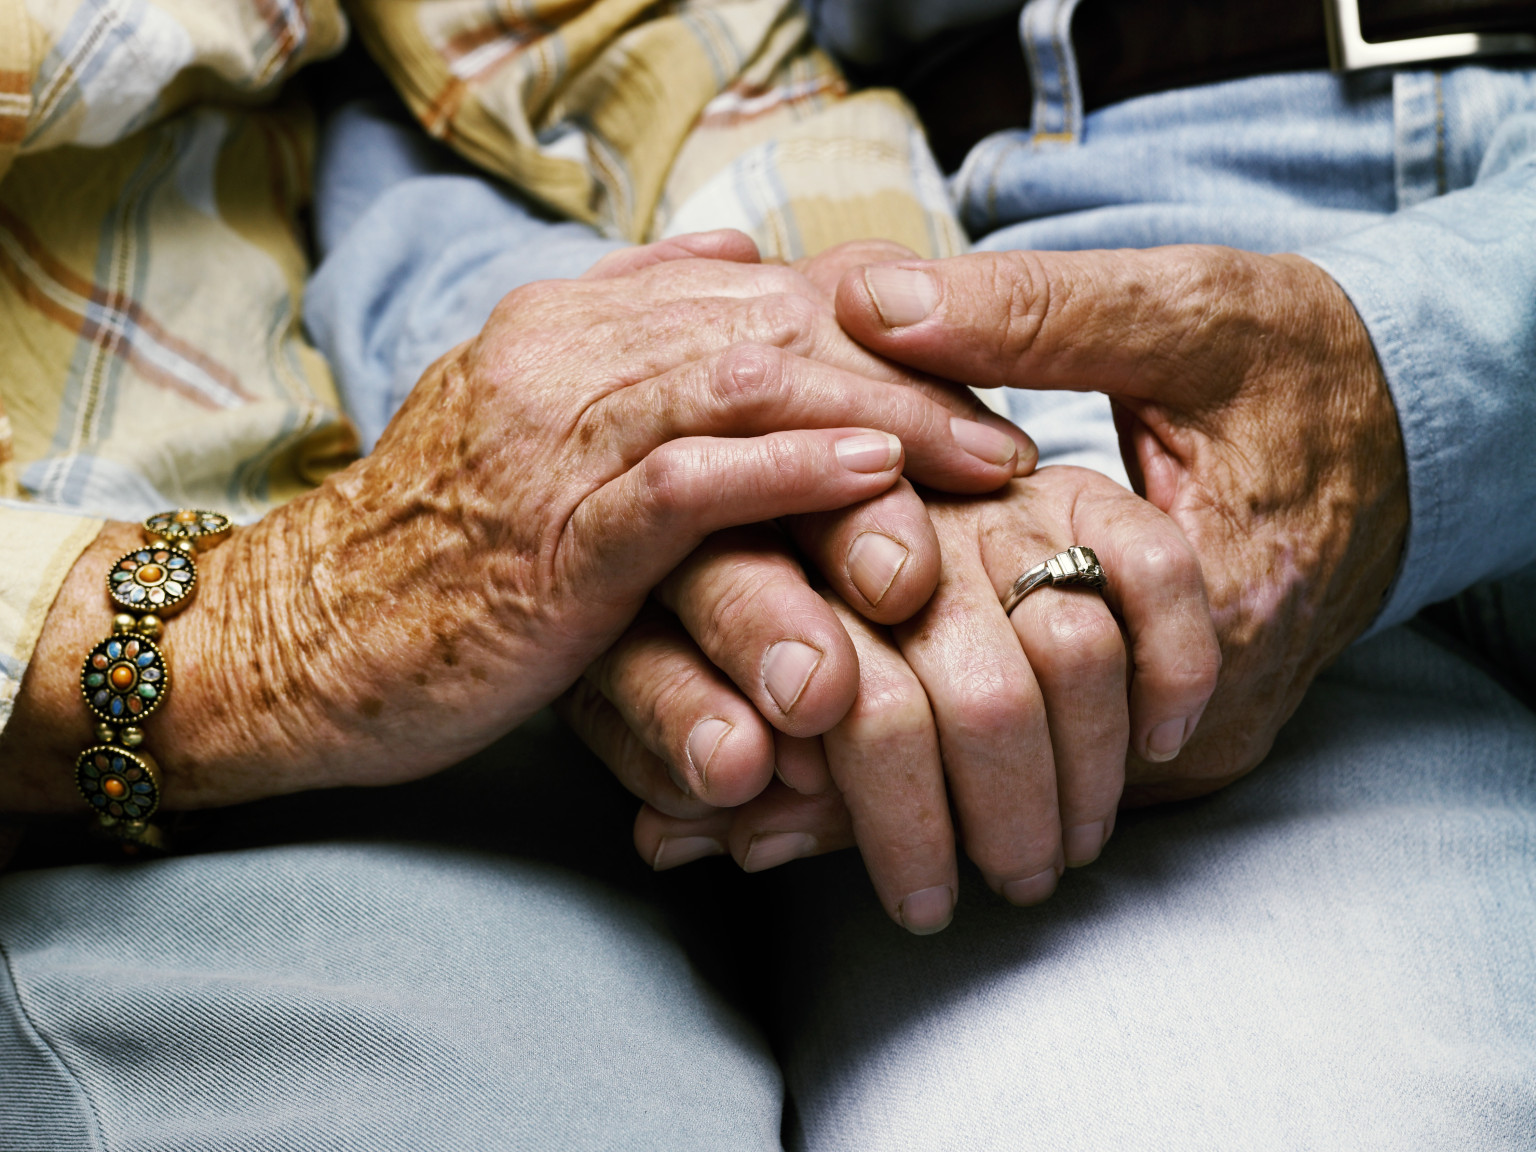 http://i.huffpost.com/gen/1266562/thumbs/o-OLD-COUPLE-HOLDING-HANDS-facebook.jpg